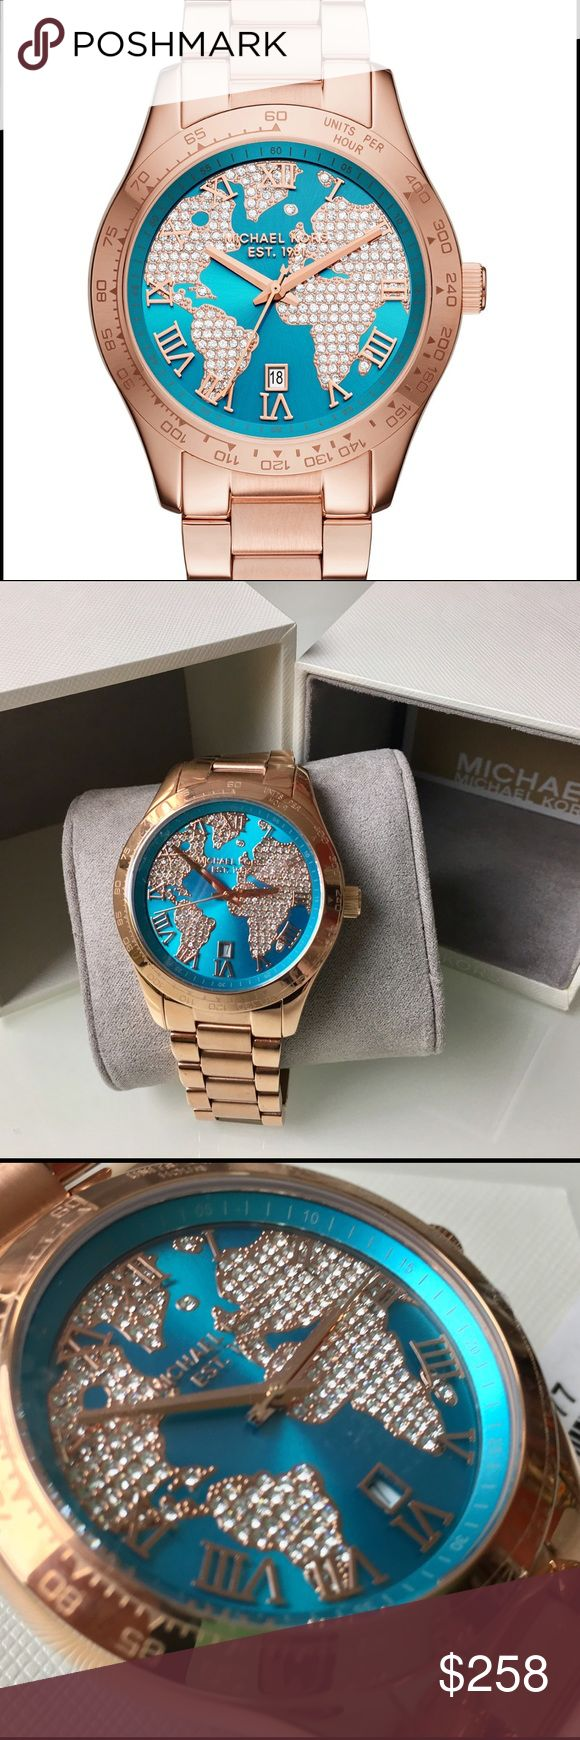 MK  Rose Gold Tone  watch Michael Kors  % Authentic Woman's  Layton Rose Gold Tone Stainless Steel Bracelet Watch 44mm MK6377. Blue and Crysral-accented rose-gold tone world map, Roman numerals, three hands, date window and Michael Kors logo. Water resistant to 100 meters. Round case, 44 mm. This is an oversized watch. Michael Kors Accessories Watches